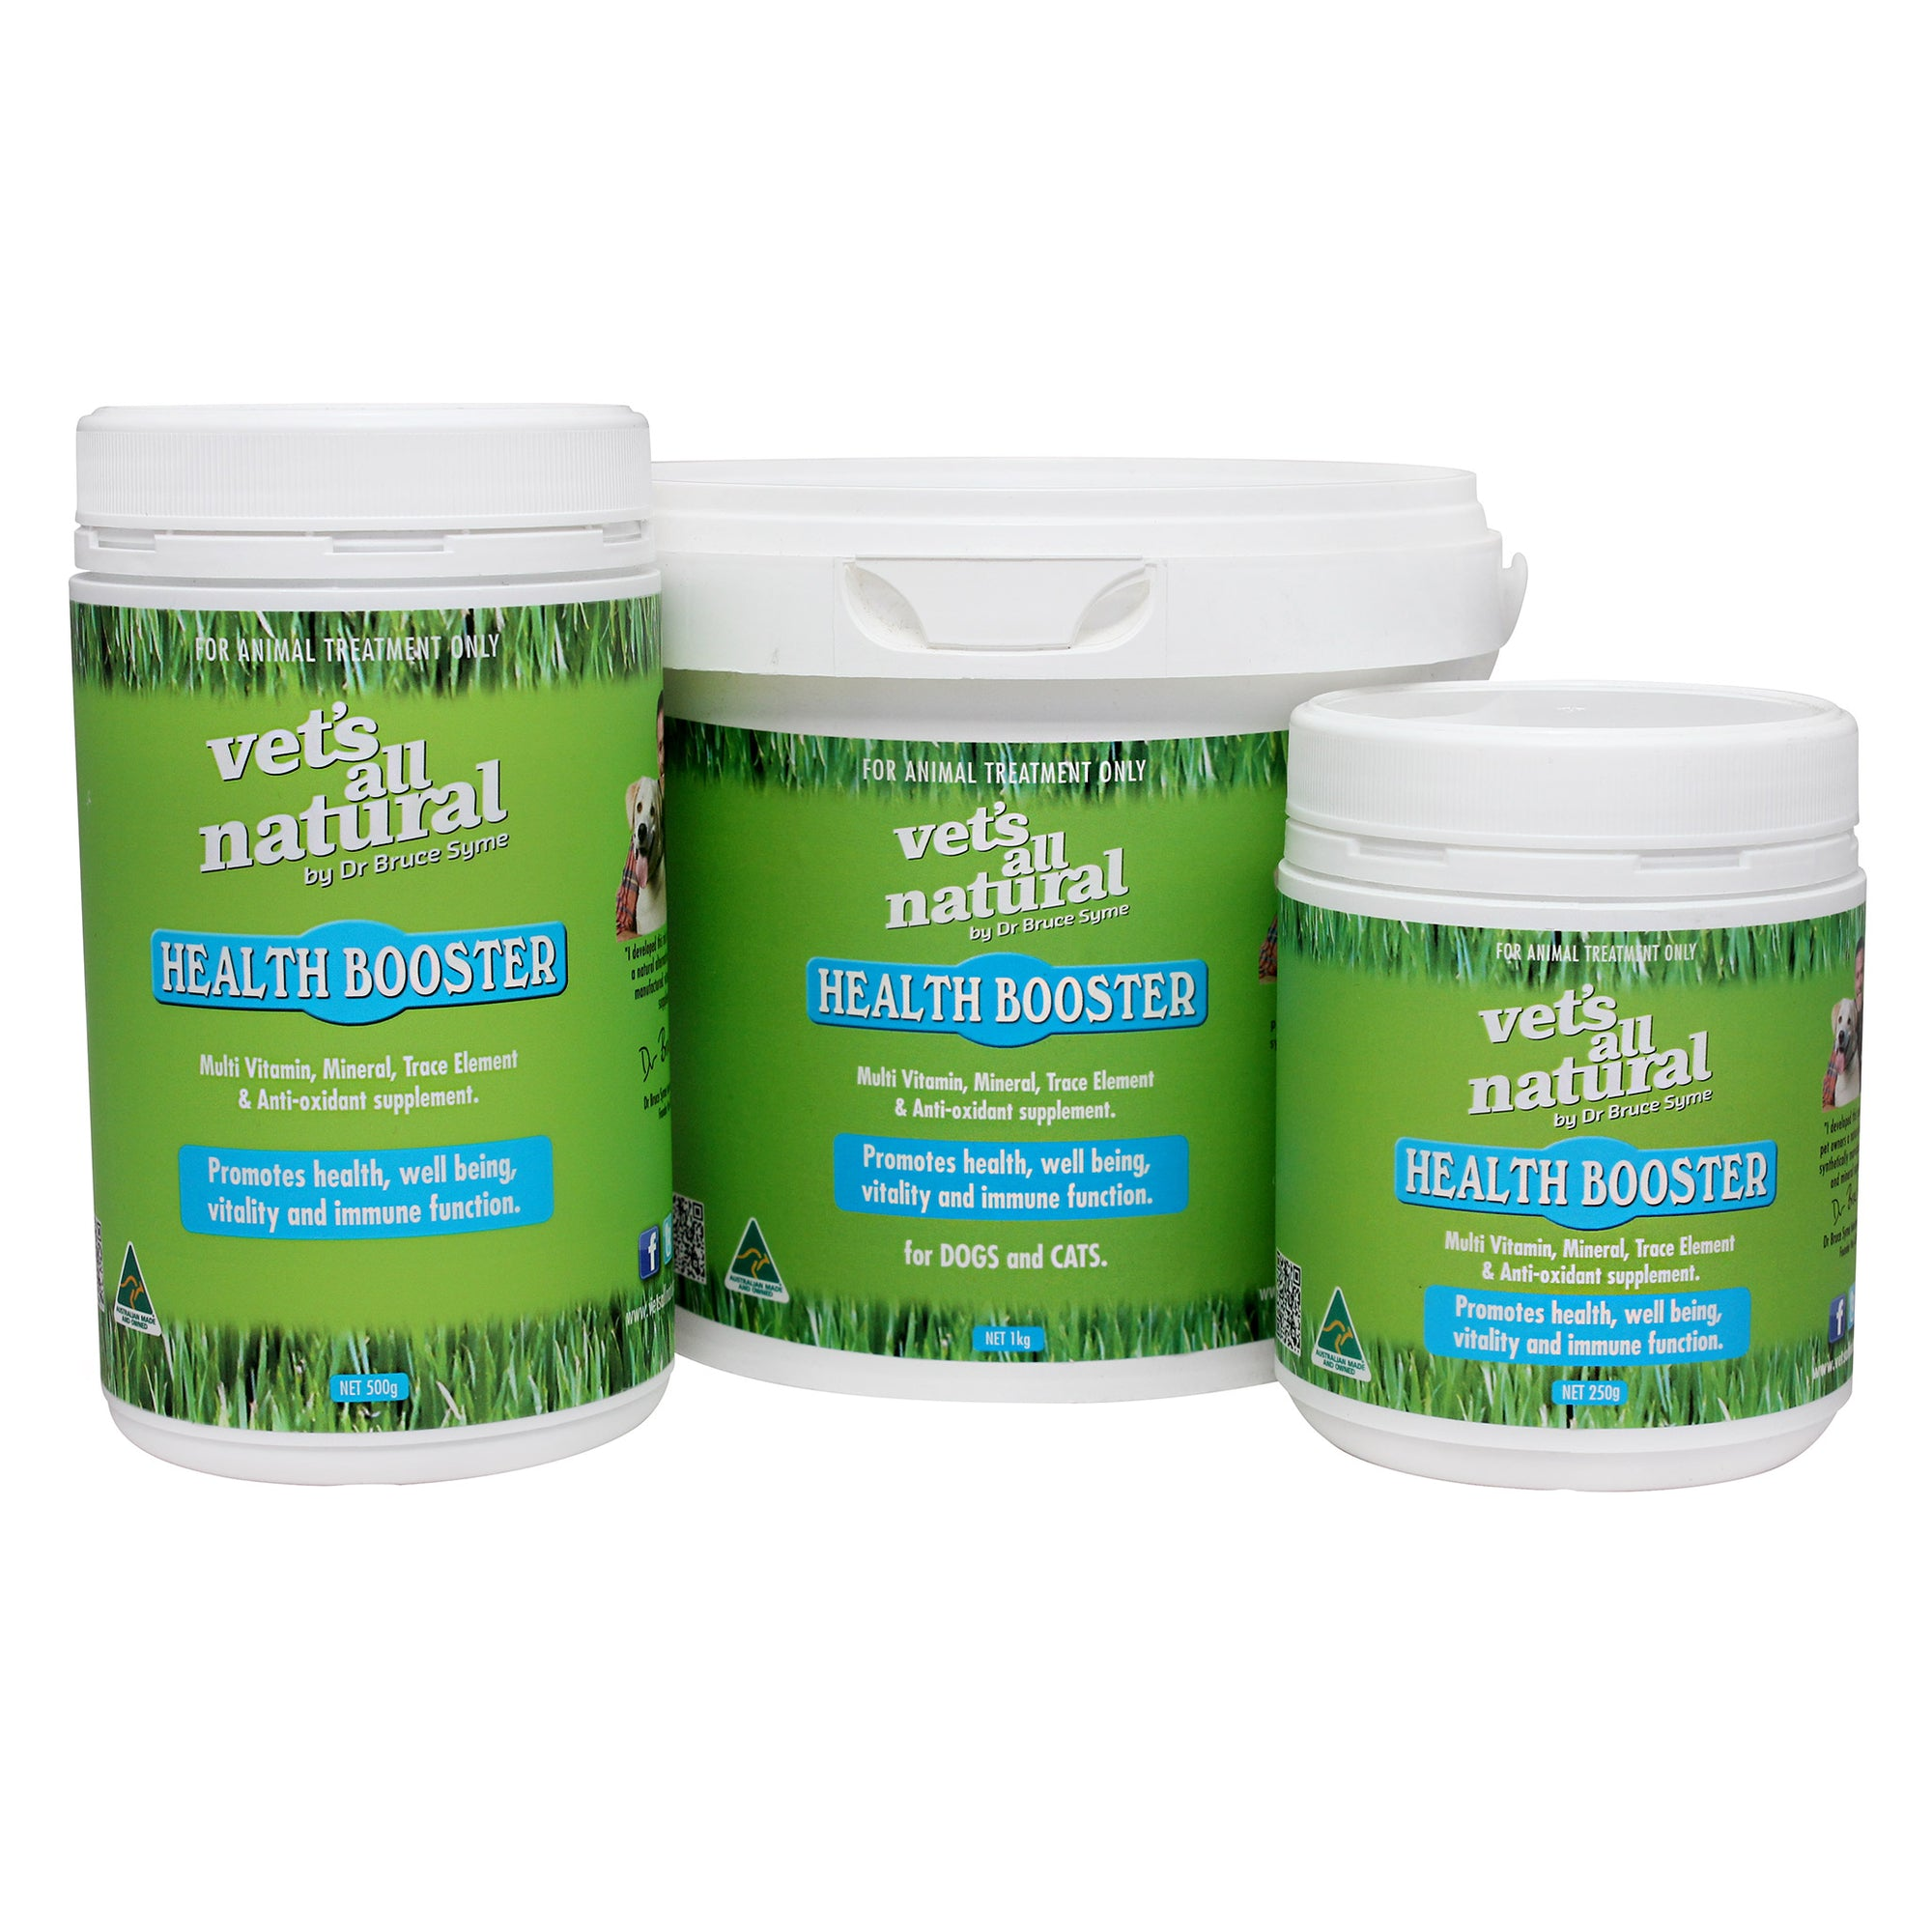 Vet's All Natural Health Booster